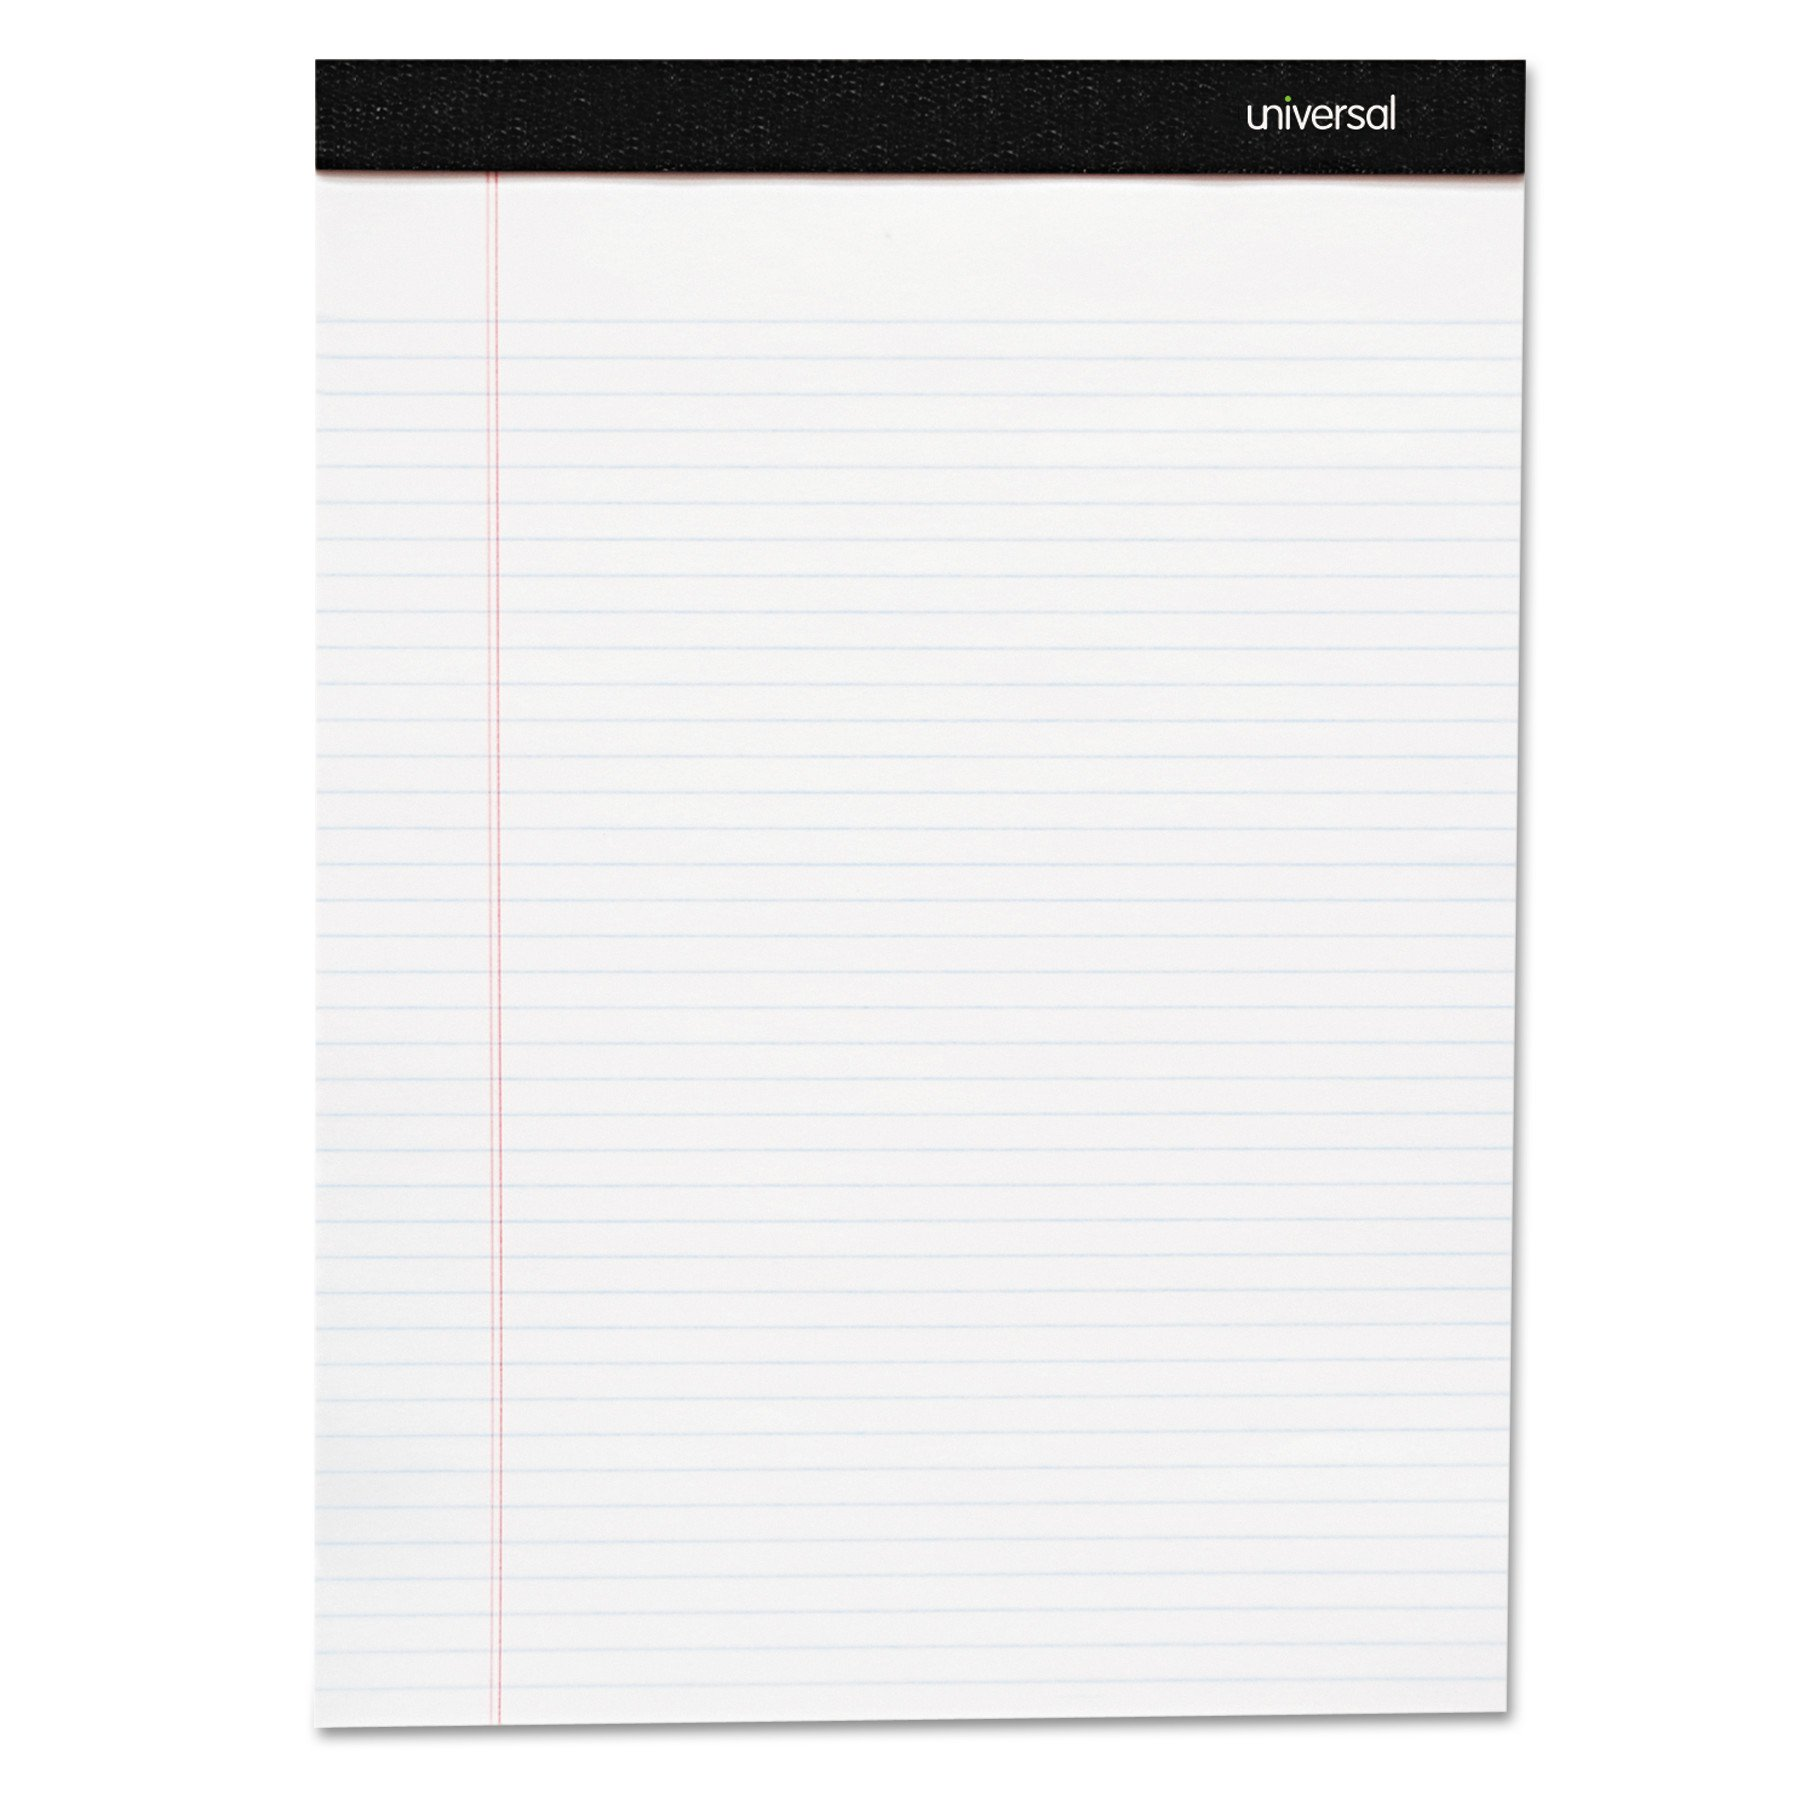 Universal 30630 Premium Ruled Writing Pads, White, 8 1/2 x 11, Legal/Wide, 50 Sheets (Pack of 6 Pads)